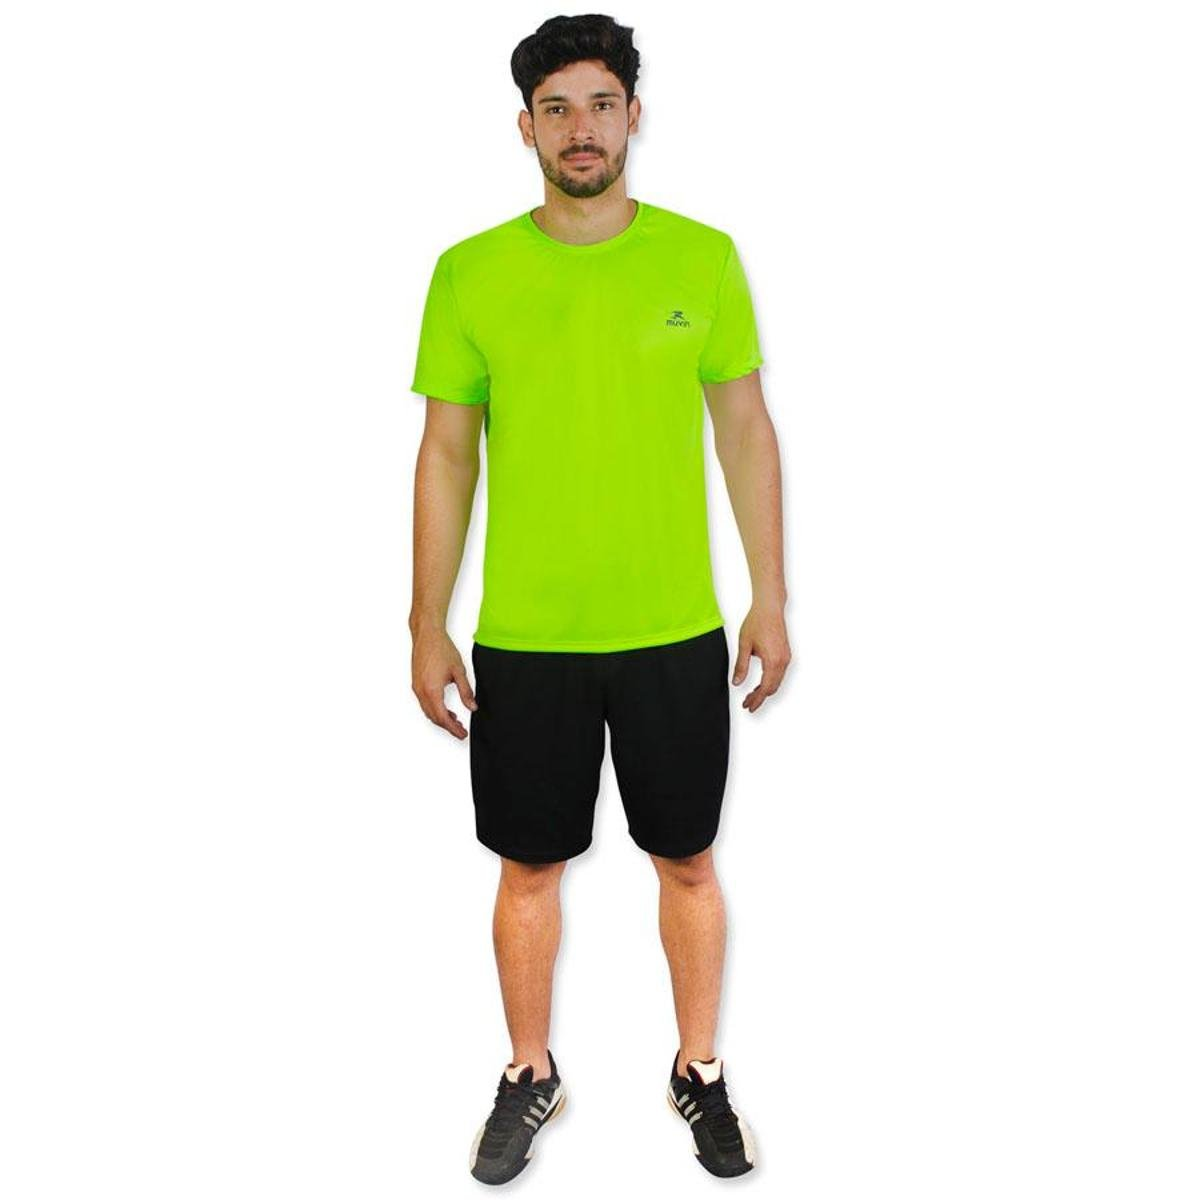 Camiseta SS Color Dry Workout Muvin Limão Verde Camiseta Color p5CwXq